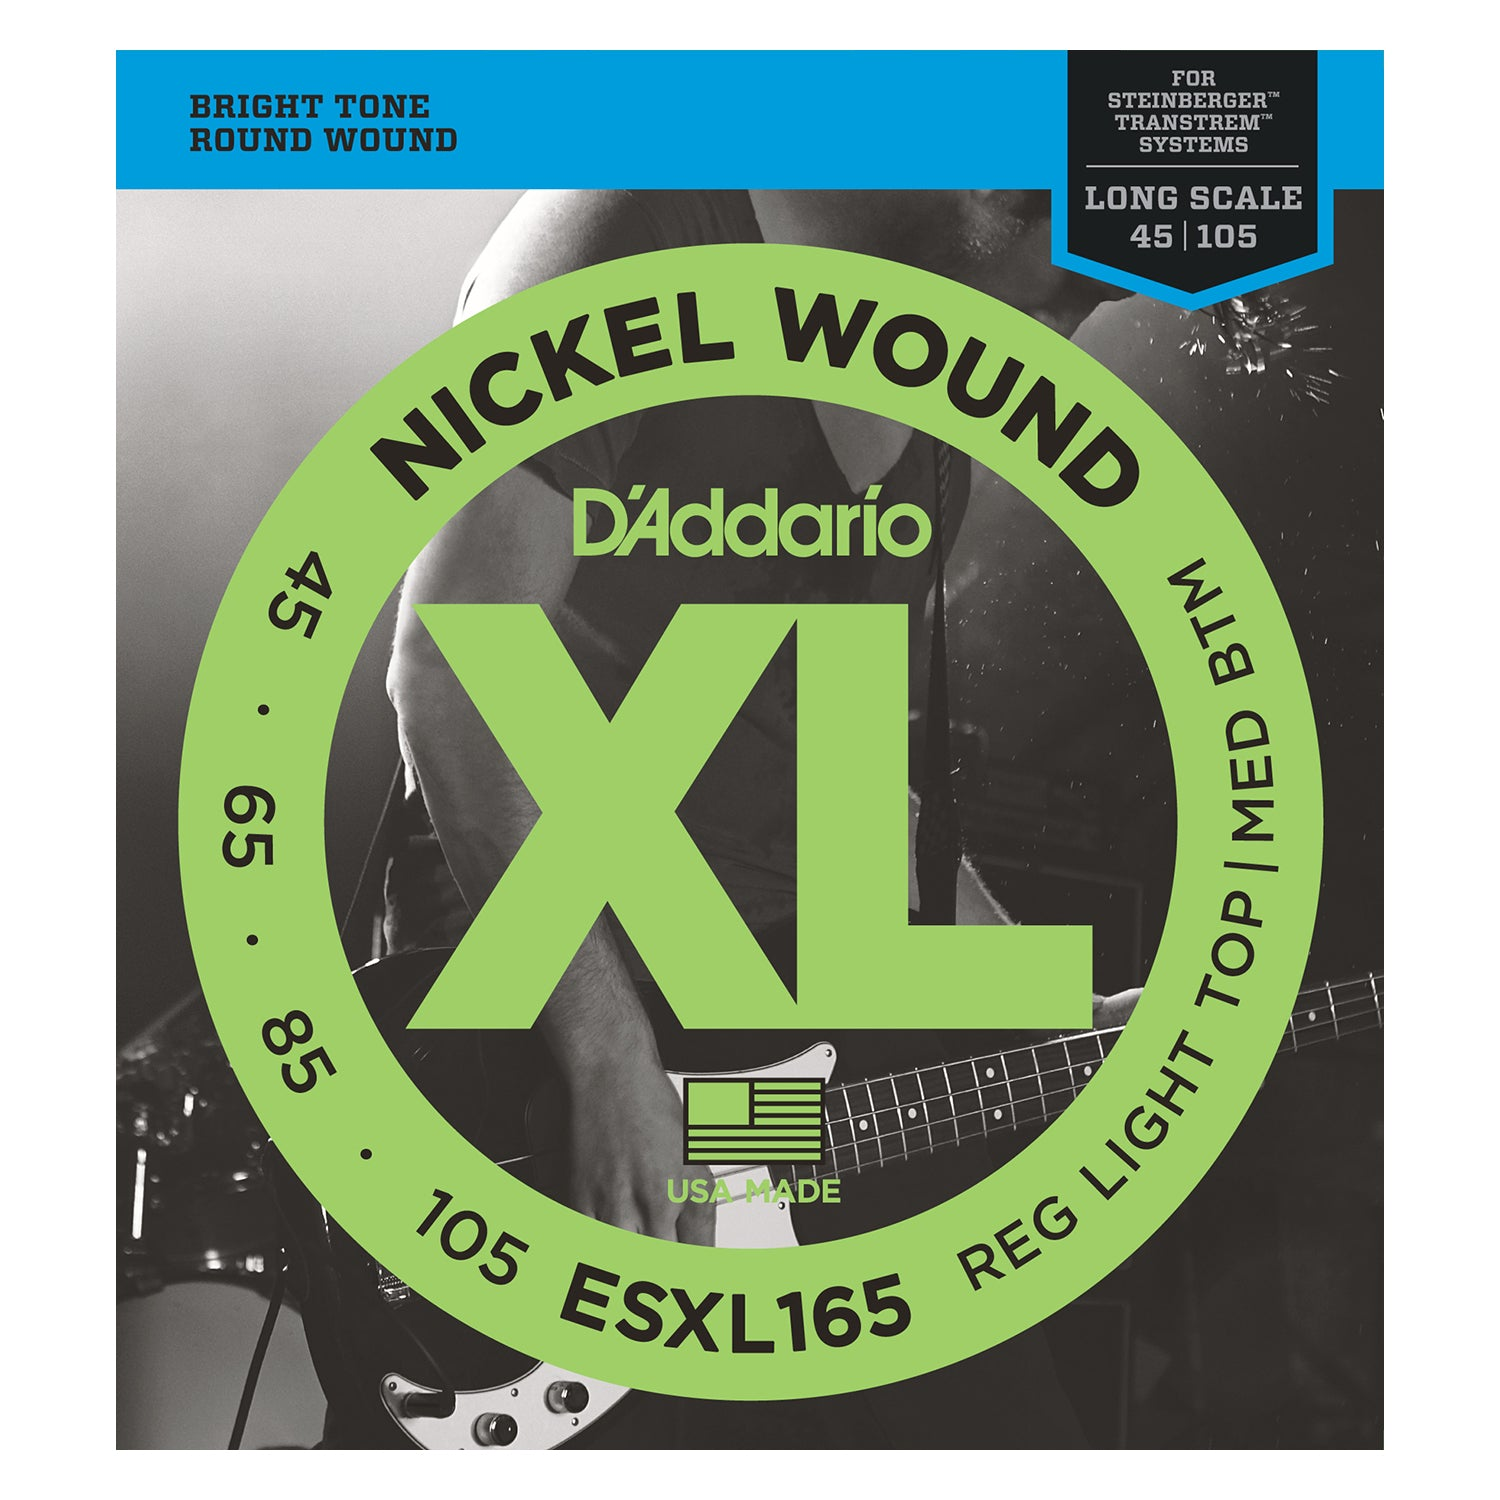 D'Addario ESXL165 Nickel Wound Bass Guitar Strings, Medium, 50-105, Double Ball End, Long Scale